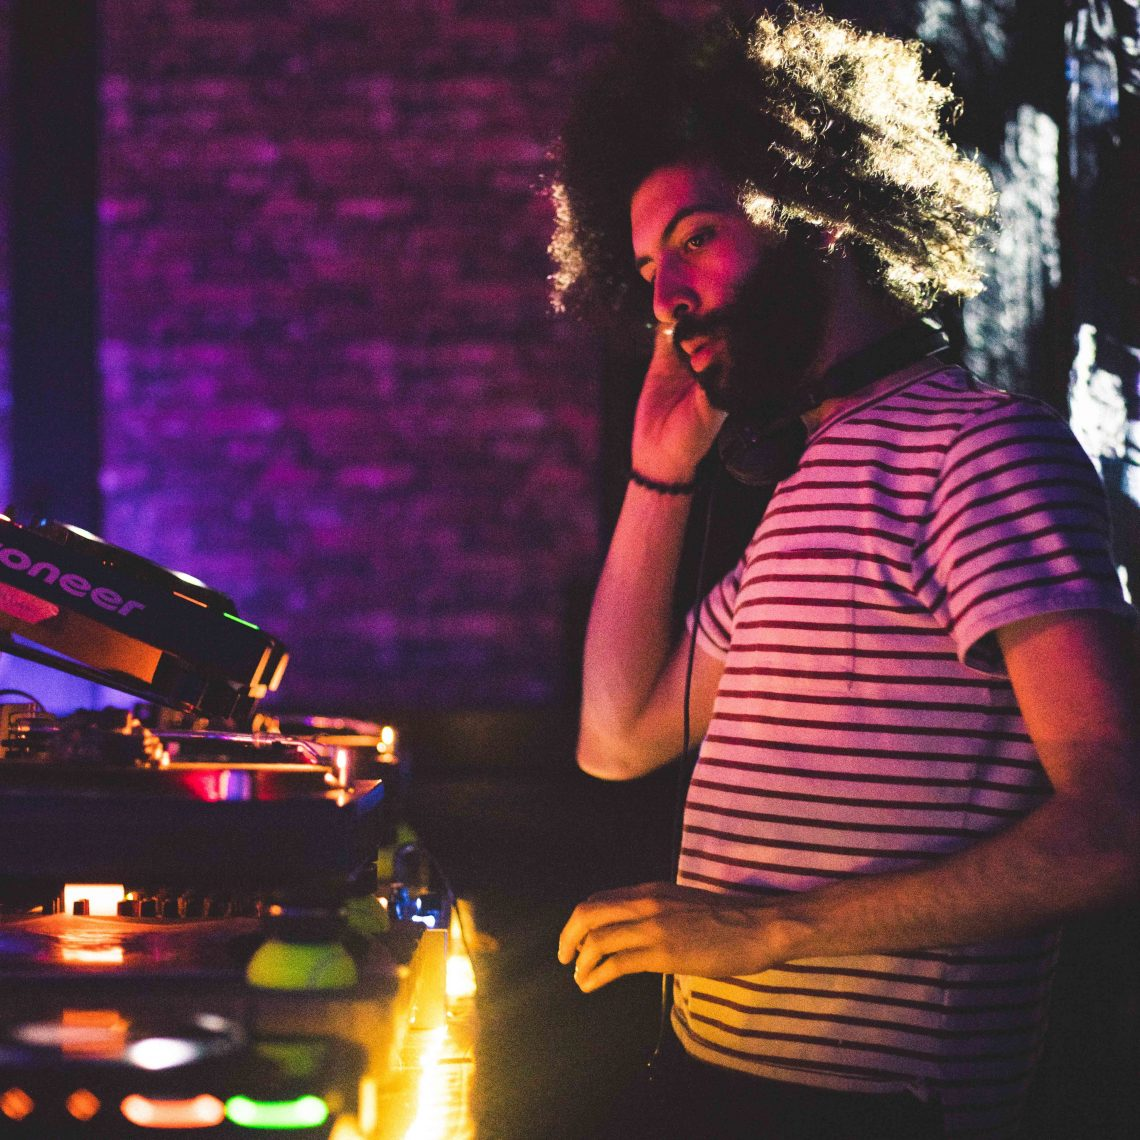 Stream 2 hours of Afriqua, recorded live at R&S Release party in Portland/USA